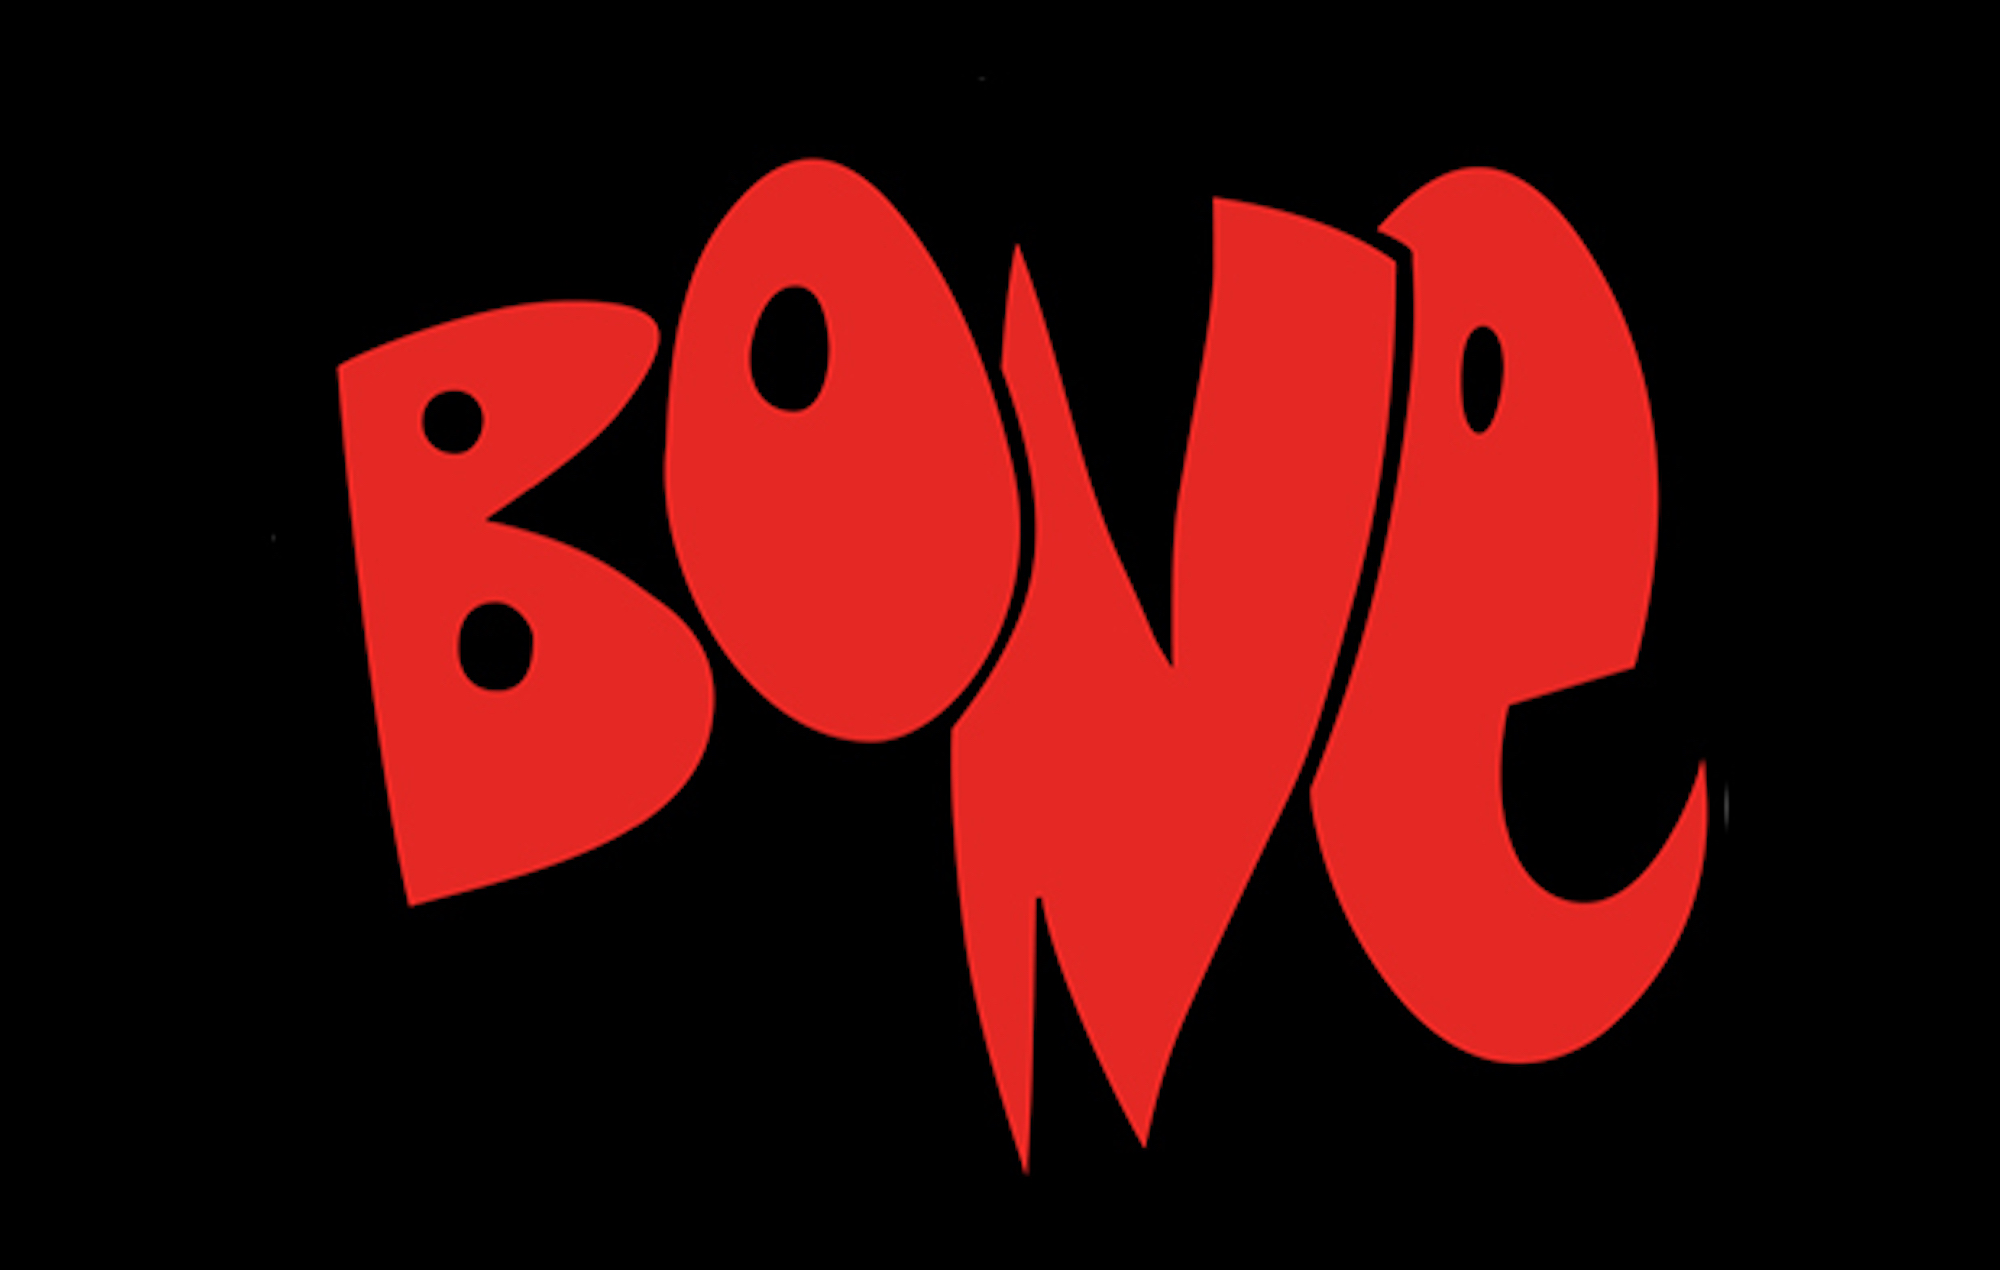 Comic series 'Bone' to come to Netflix in new animated TV series